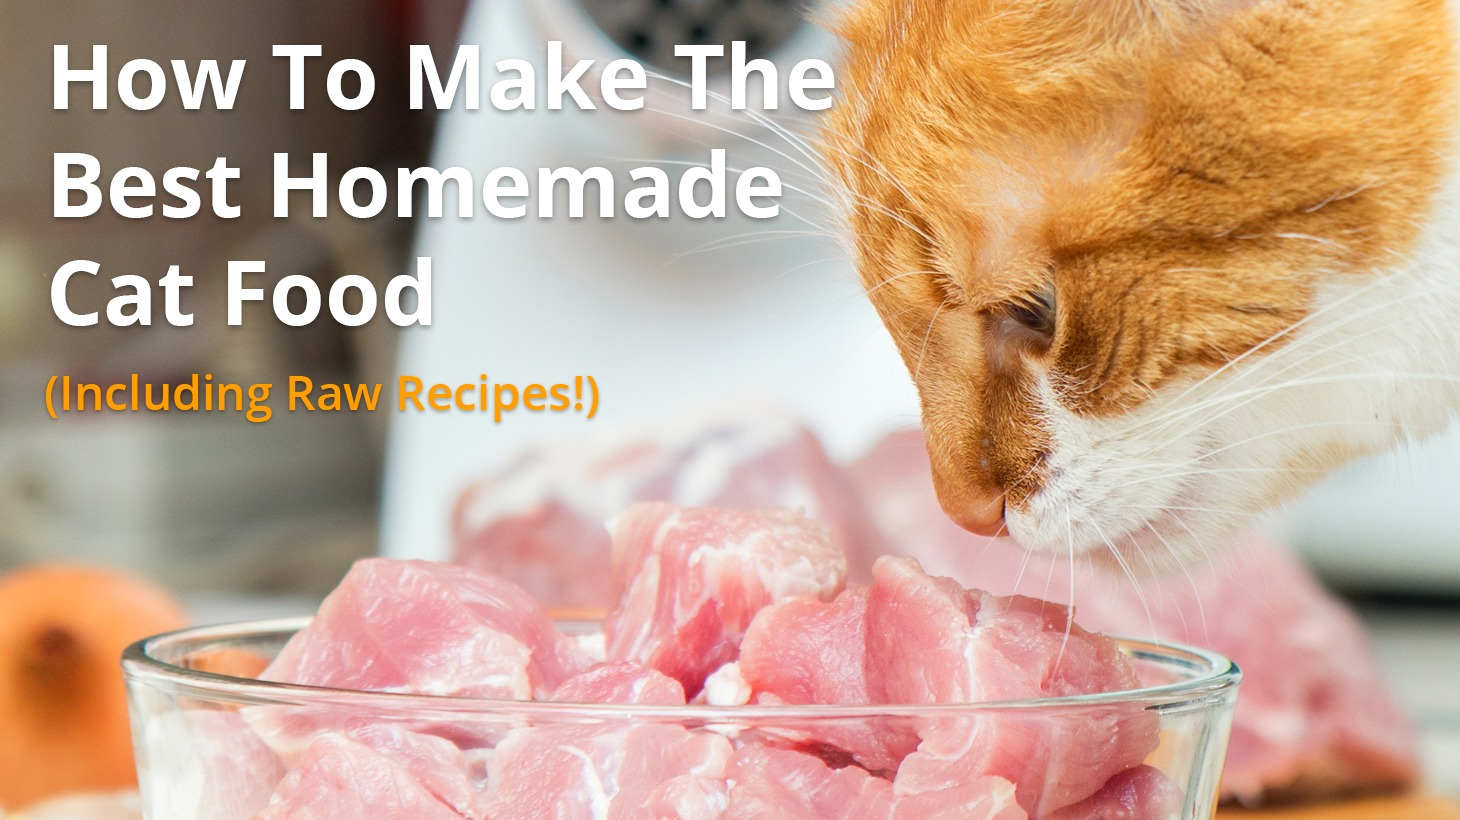 Home Cooked Cat Food Recipes